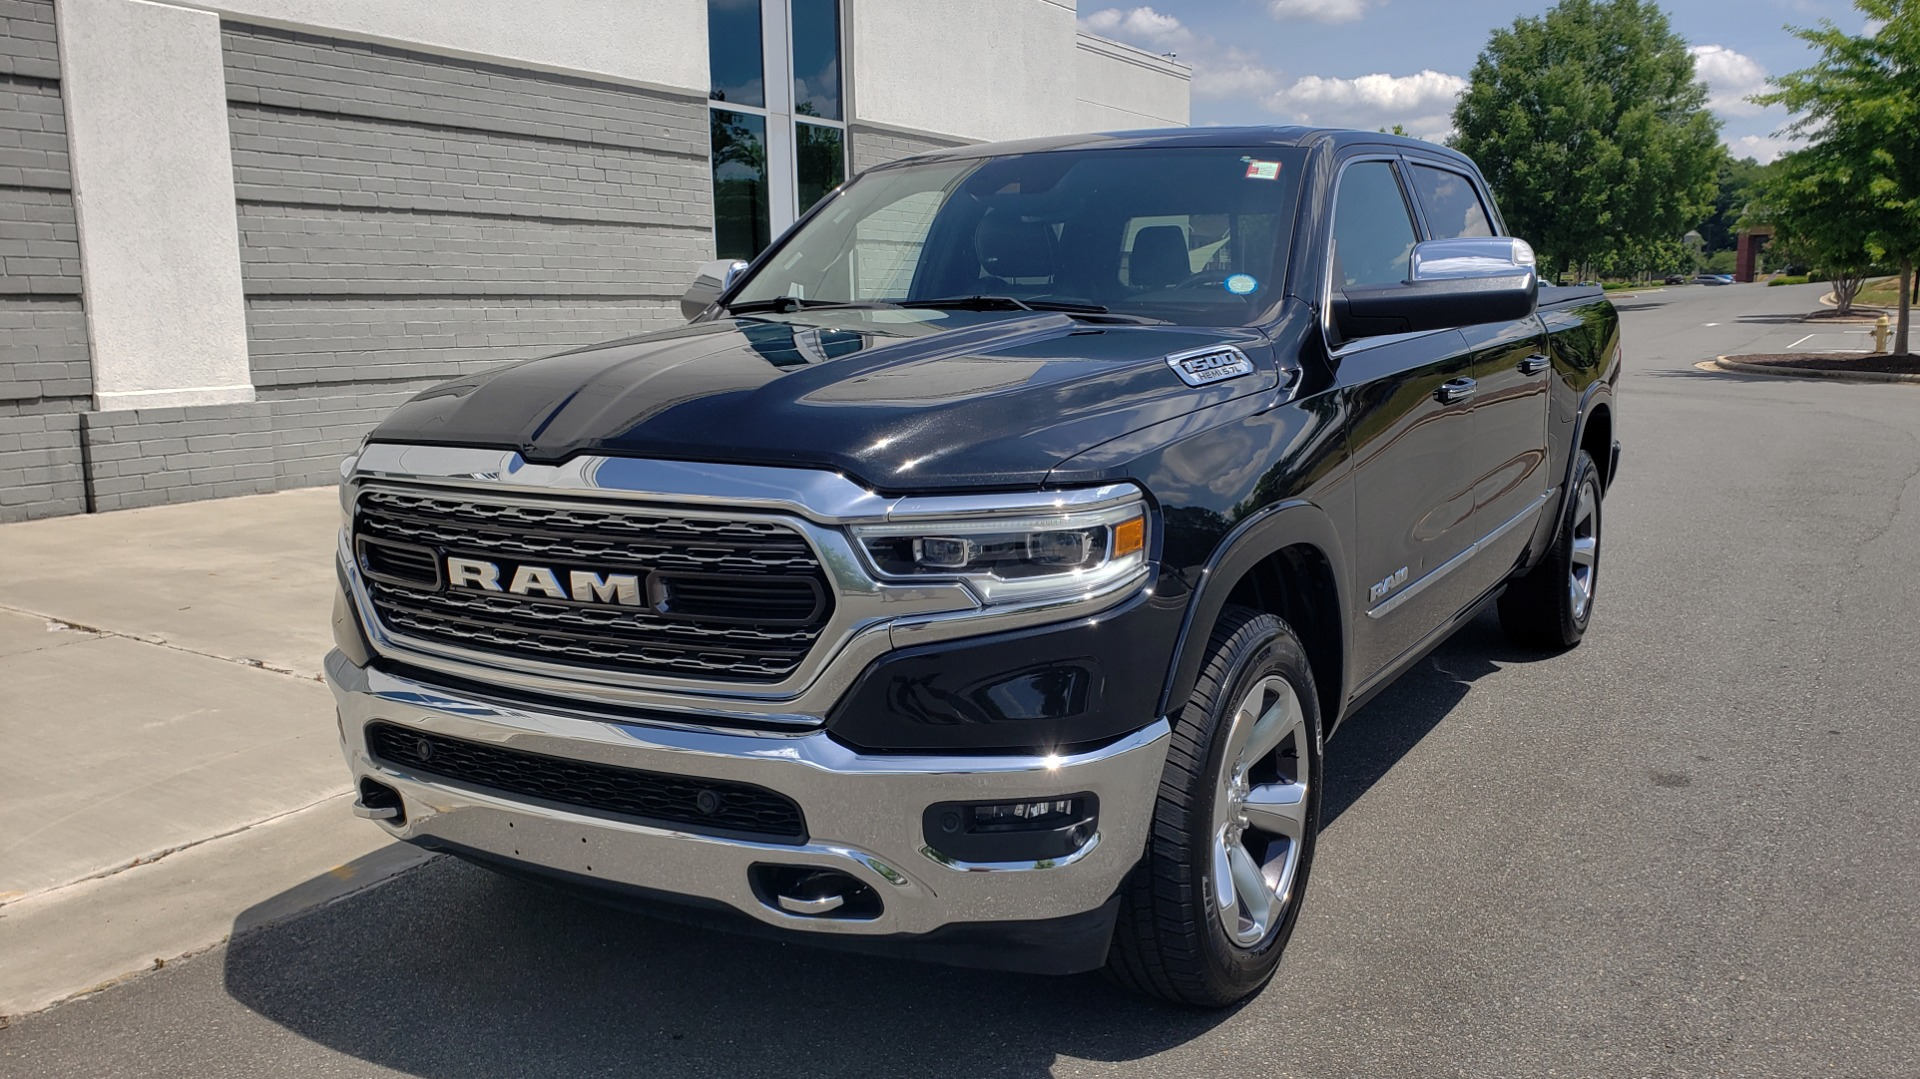 Used 2019 Ram 1500 LIMITED / NAV / PANO-ROOF / TOW PKG / H/K SND / REARVIEW for sale $46,995 at Formula Imports in Charlotte NC 28227 6